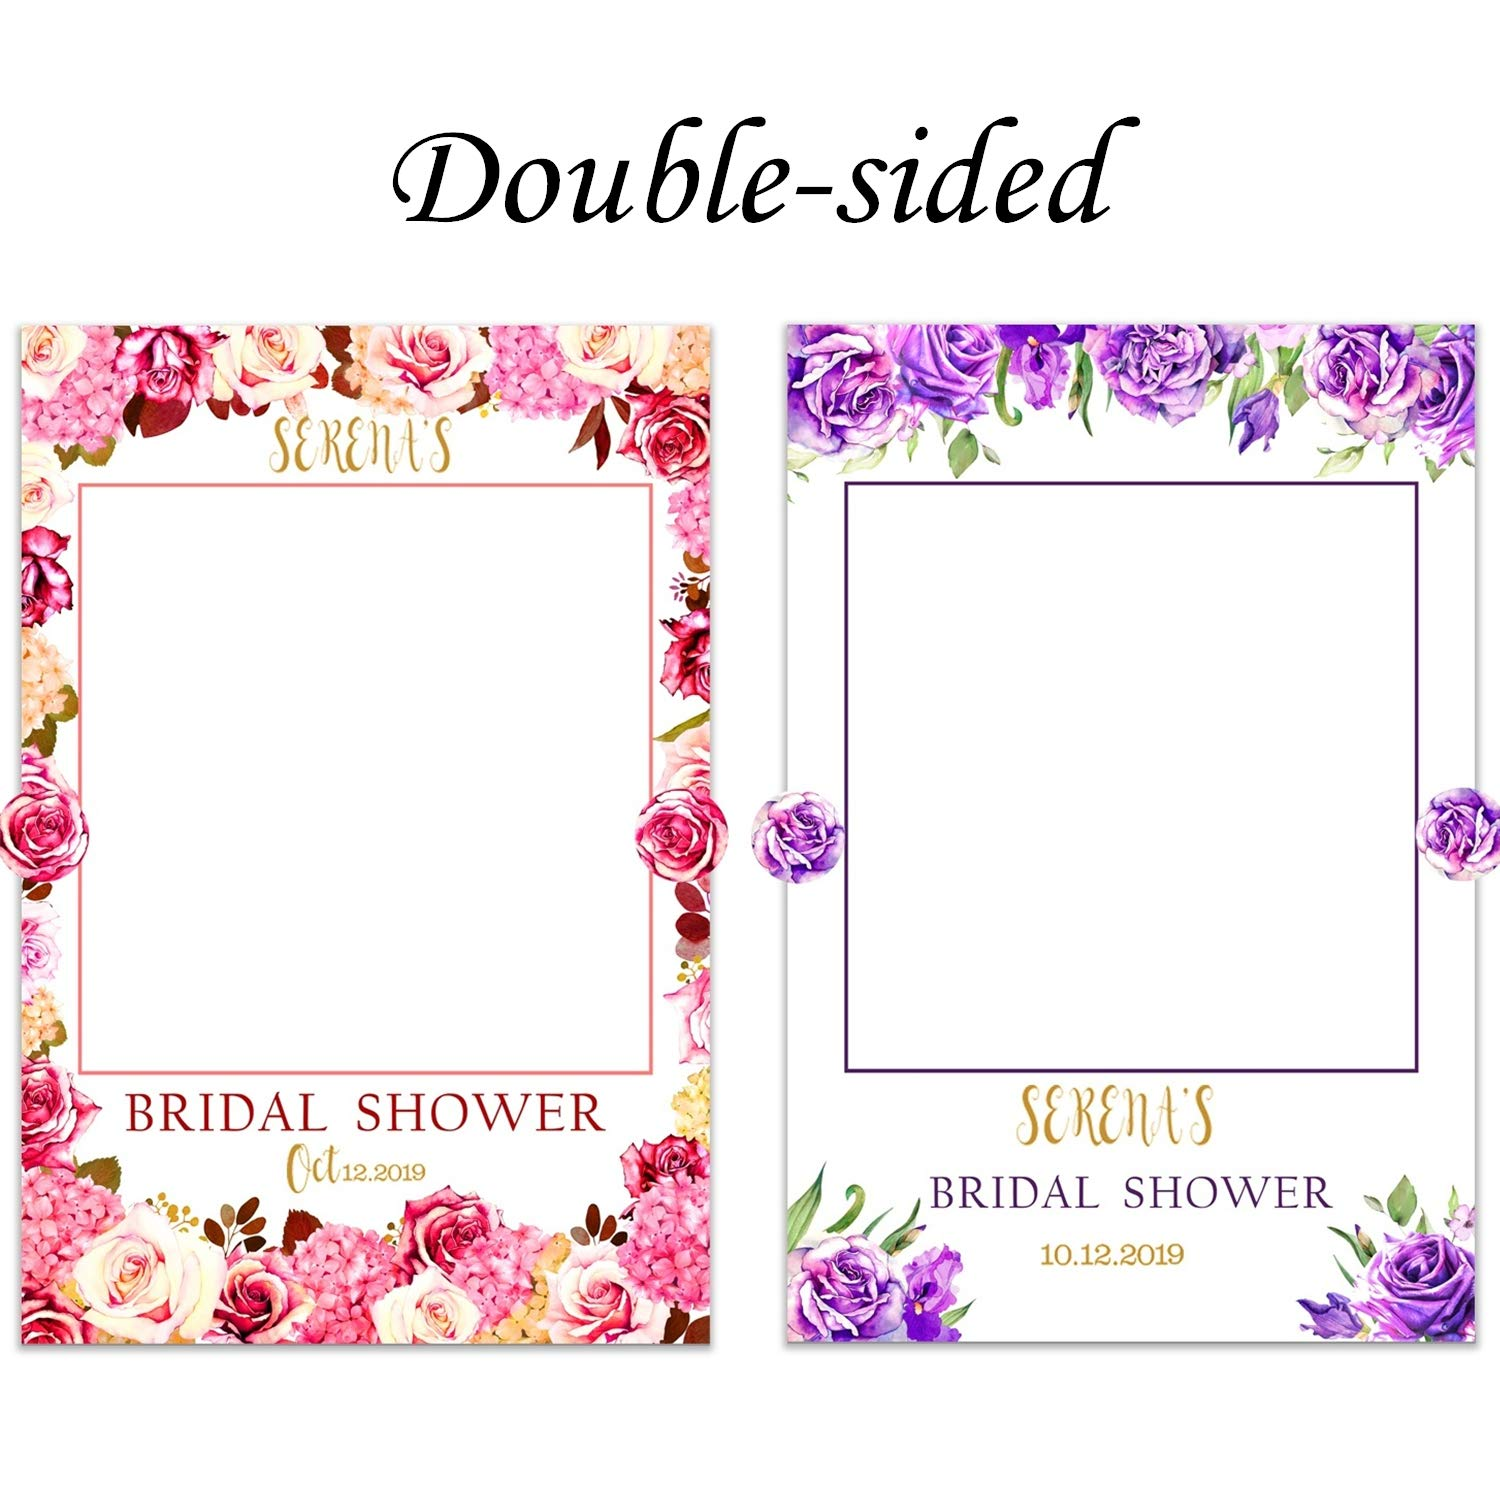 Bridal Shower Photo Booth Frame Party Supplies Double-Sided Rose Flower Bachelorette Photo Props Photobooth Wedding Selfie Personalized Decorations (Rose Flower)